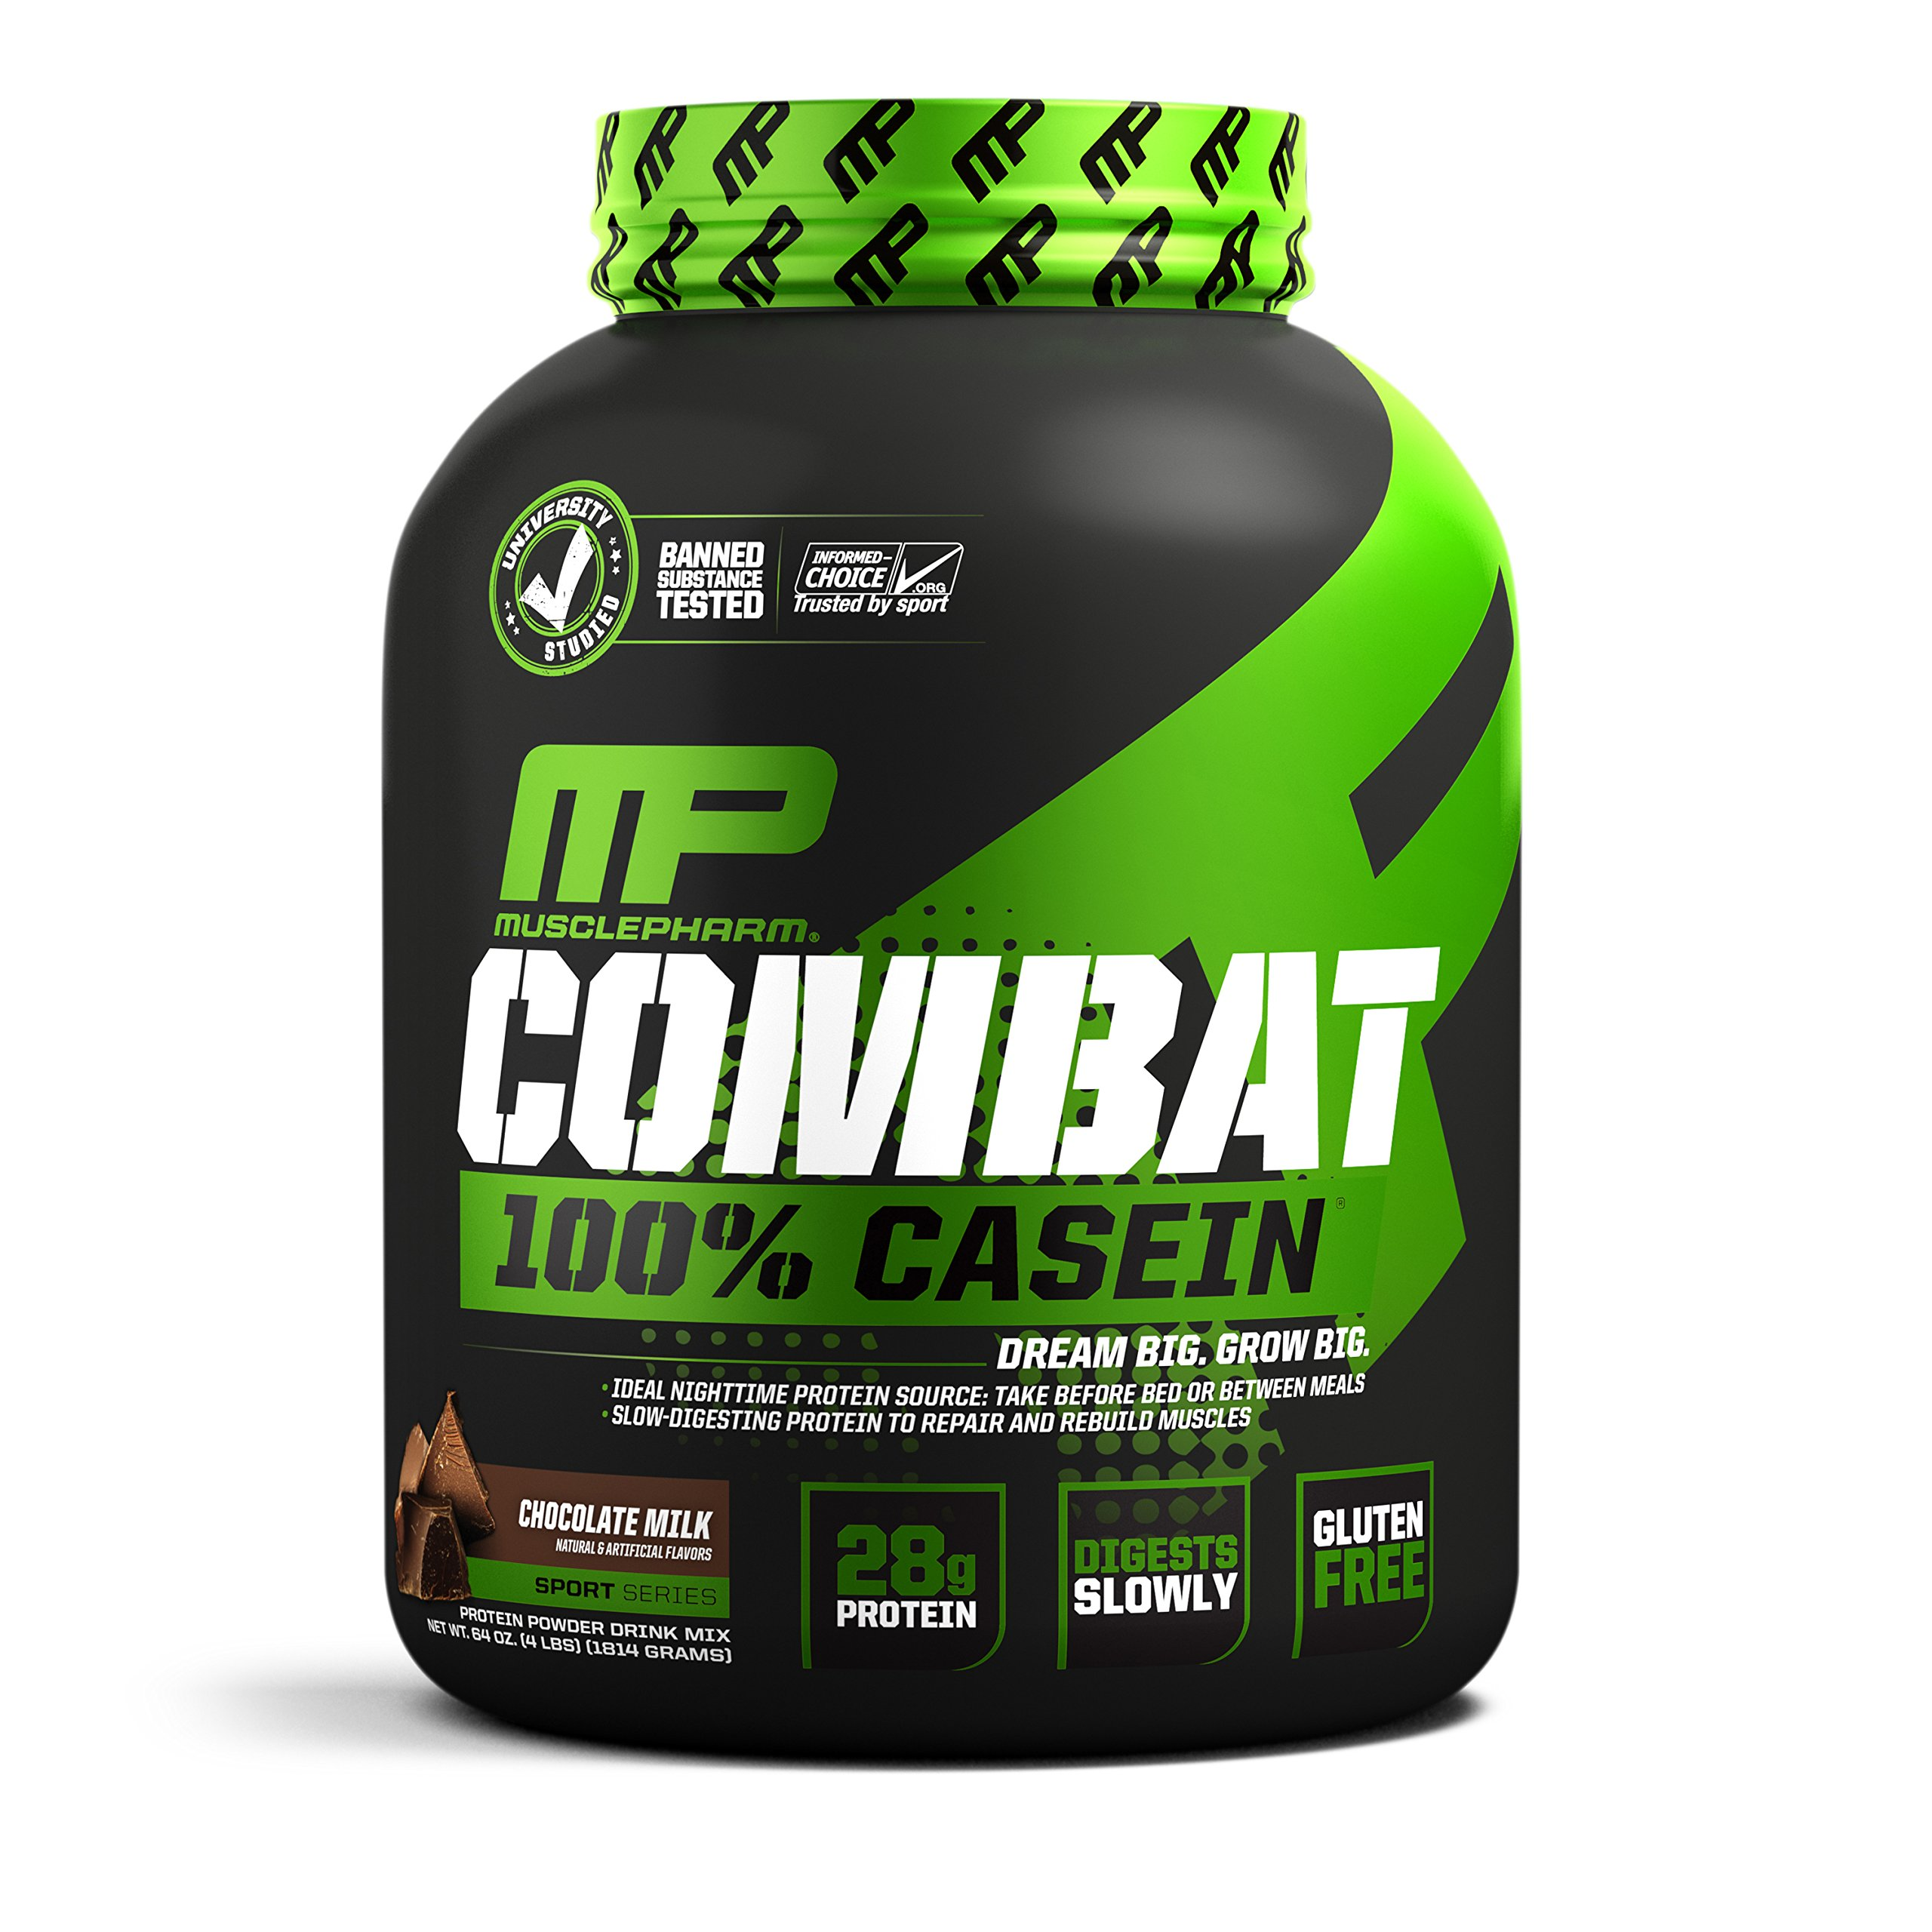 MusclePharm Combat 100% Casein Supplement, Casein Protein Powder, Muscle Supplement, 100% Micellar Casein, Rebuilds Muscle, 28 Grams of Slow-Digesting Protein, Chocolate Milk, 4-Pounds, 52 Servings by Muscle Pharm